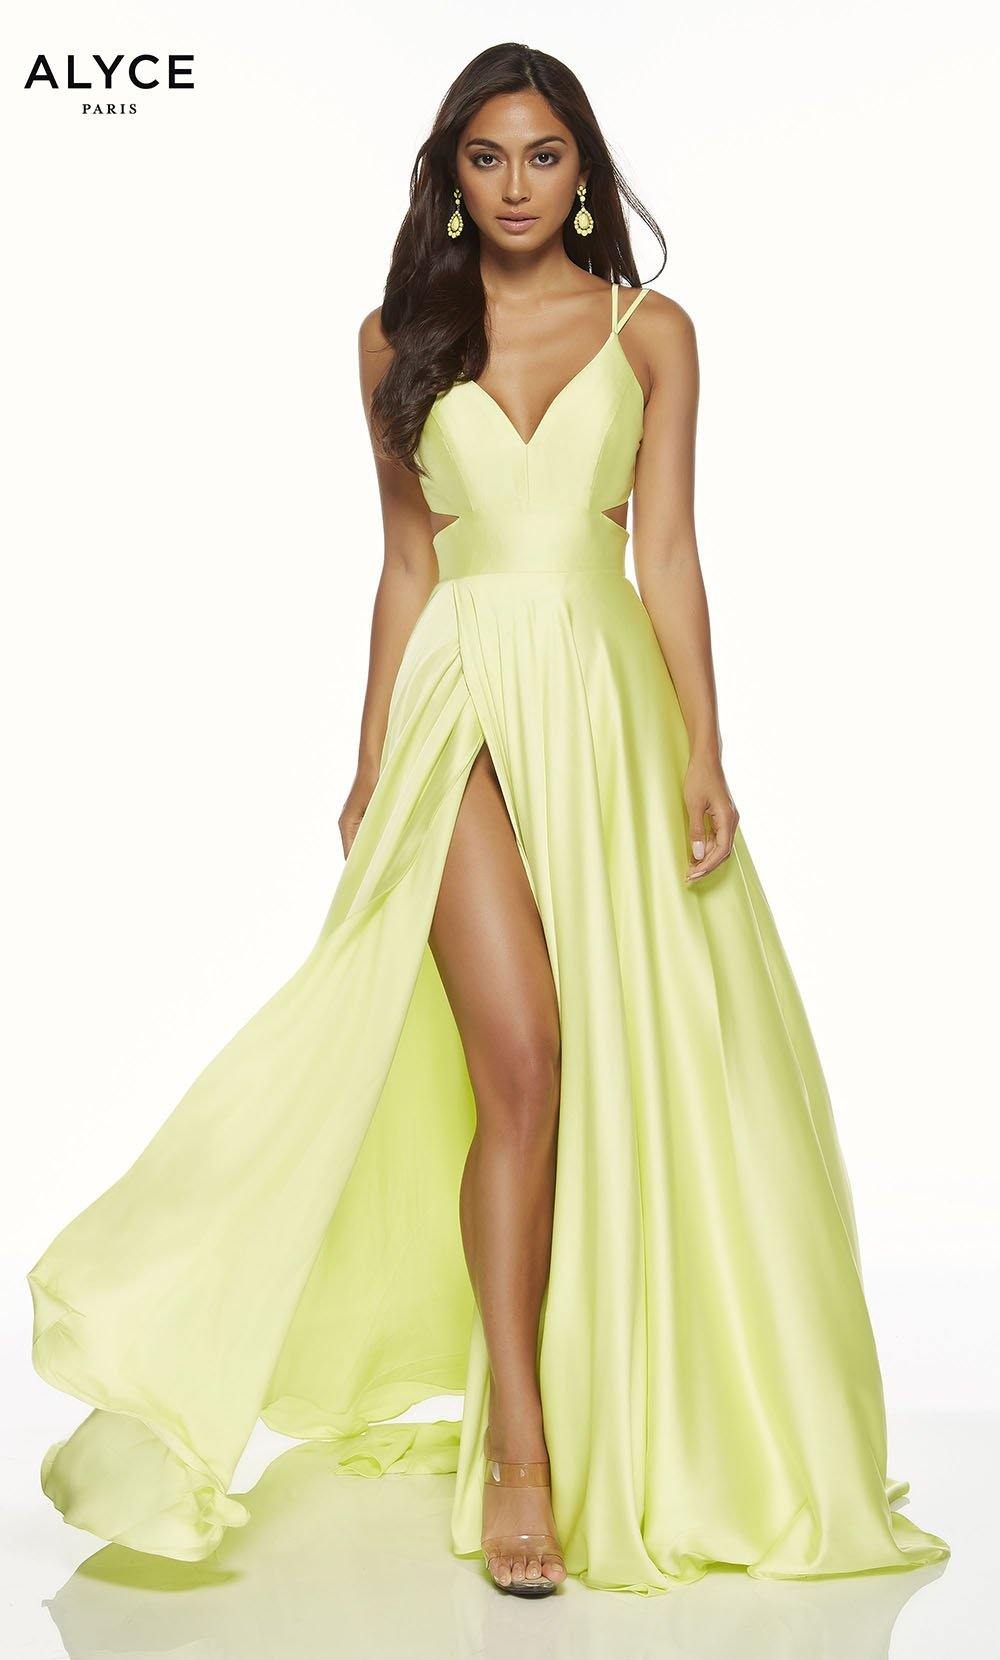 Yellow flowy satin chiffon prom dress with a V neck, side cutouts, and front slit